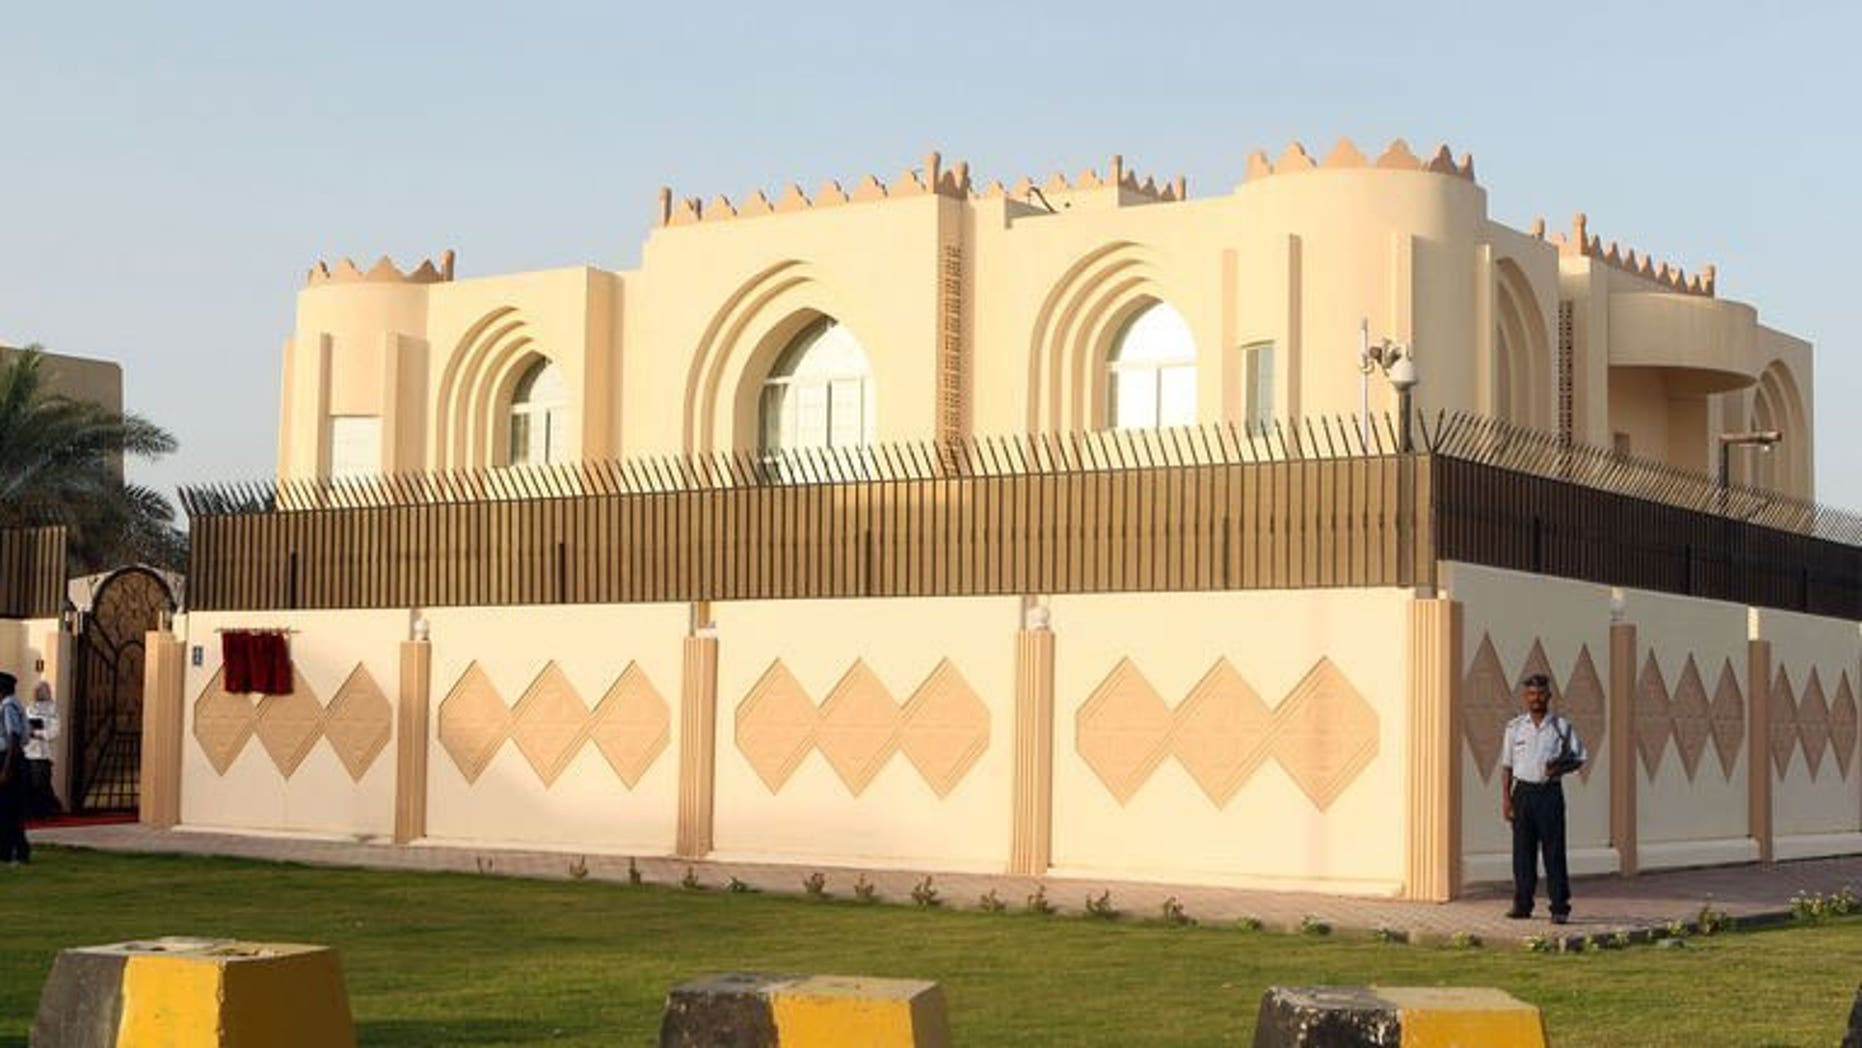 Security guards stand outside the new Taliban political office in Doha, on June 18, 2013. India has given a cautious blessing to attempts to make peace with Afghanistan's Taliban insurgents as US Secretary of State John Kerry promised to pay heed to the concerns of the regional power.